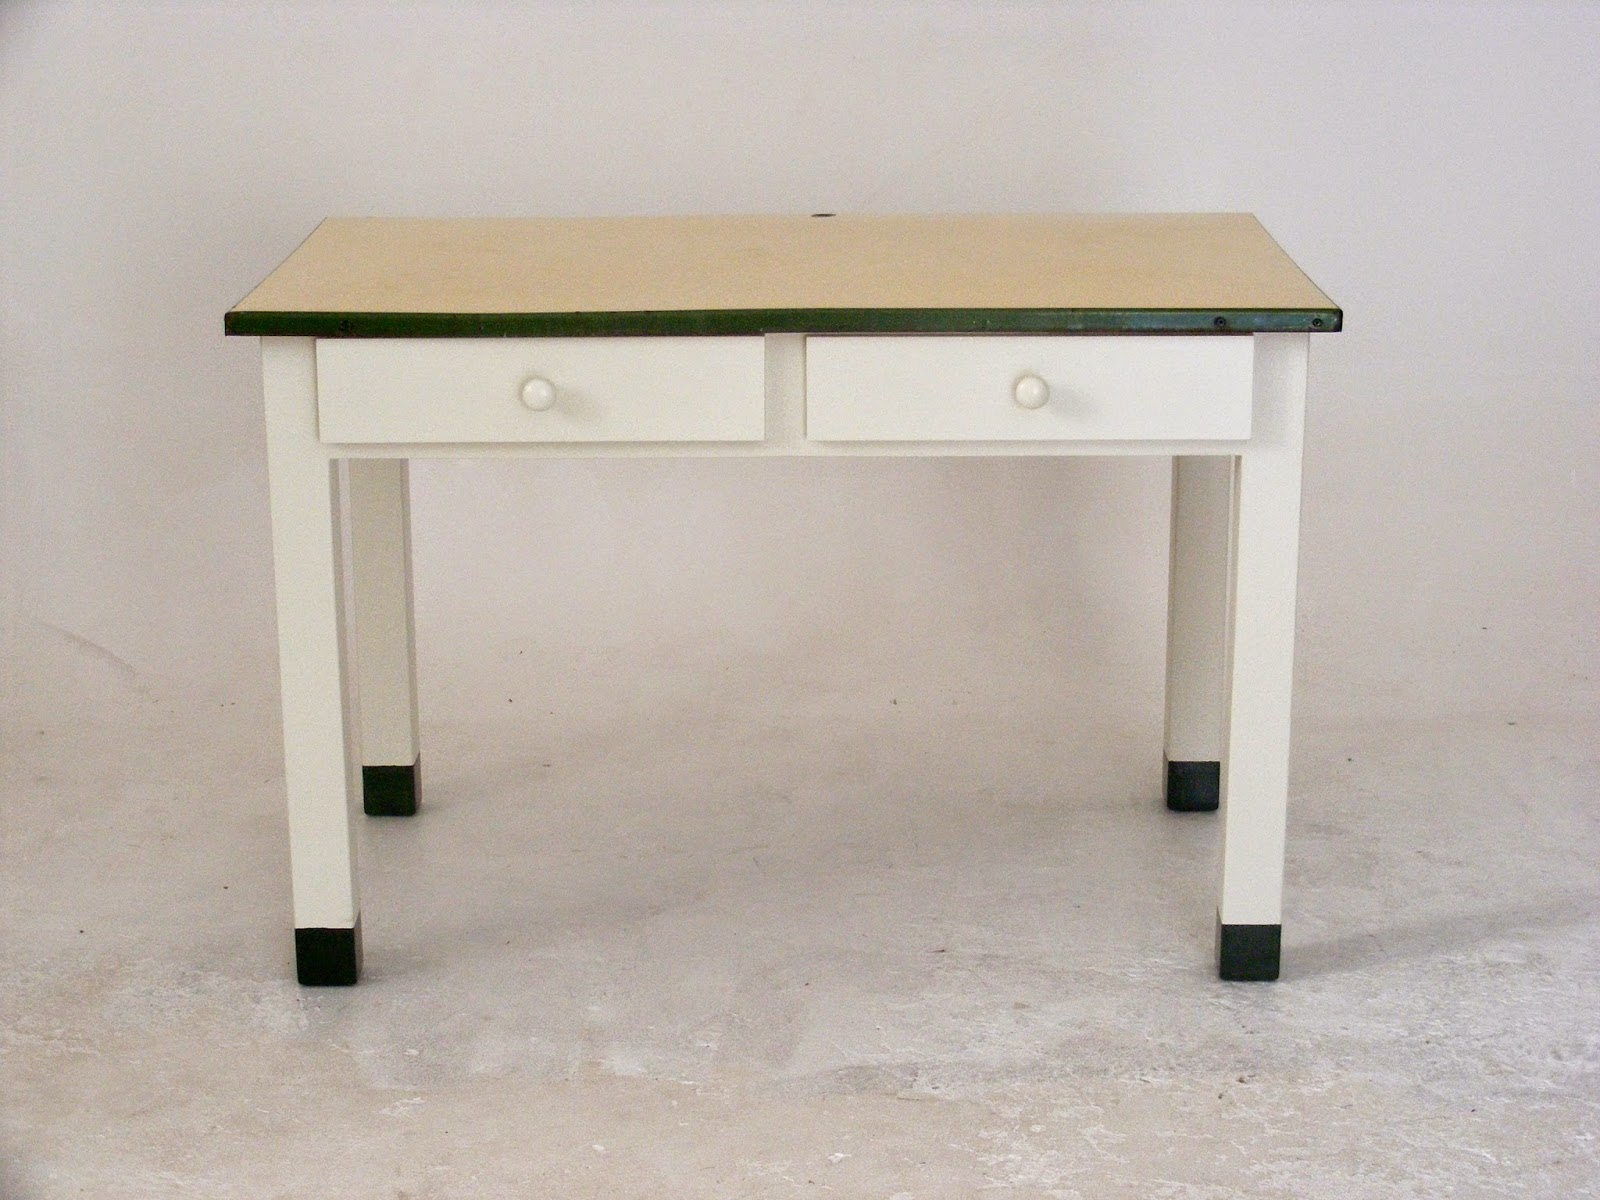 Vamp furniture new vintage stock just unpacked at vamp for 10 table cream